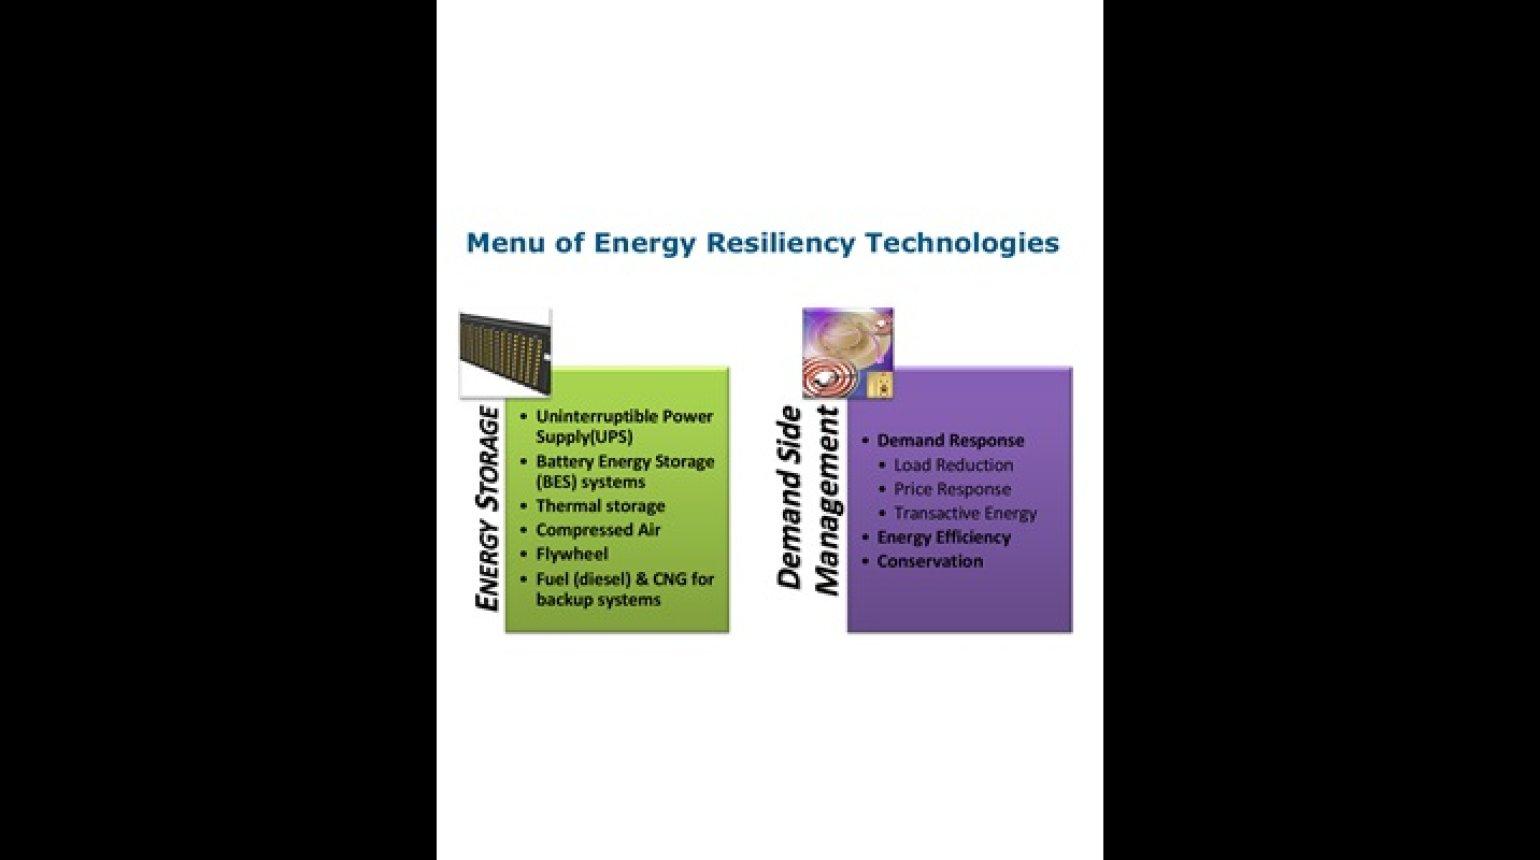 Grid Technology for Enhanced Energy System Resilience presented by Erich W. Gunther